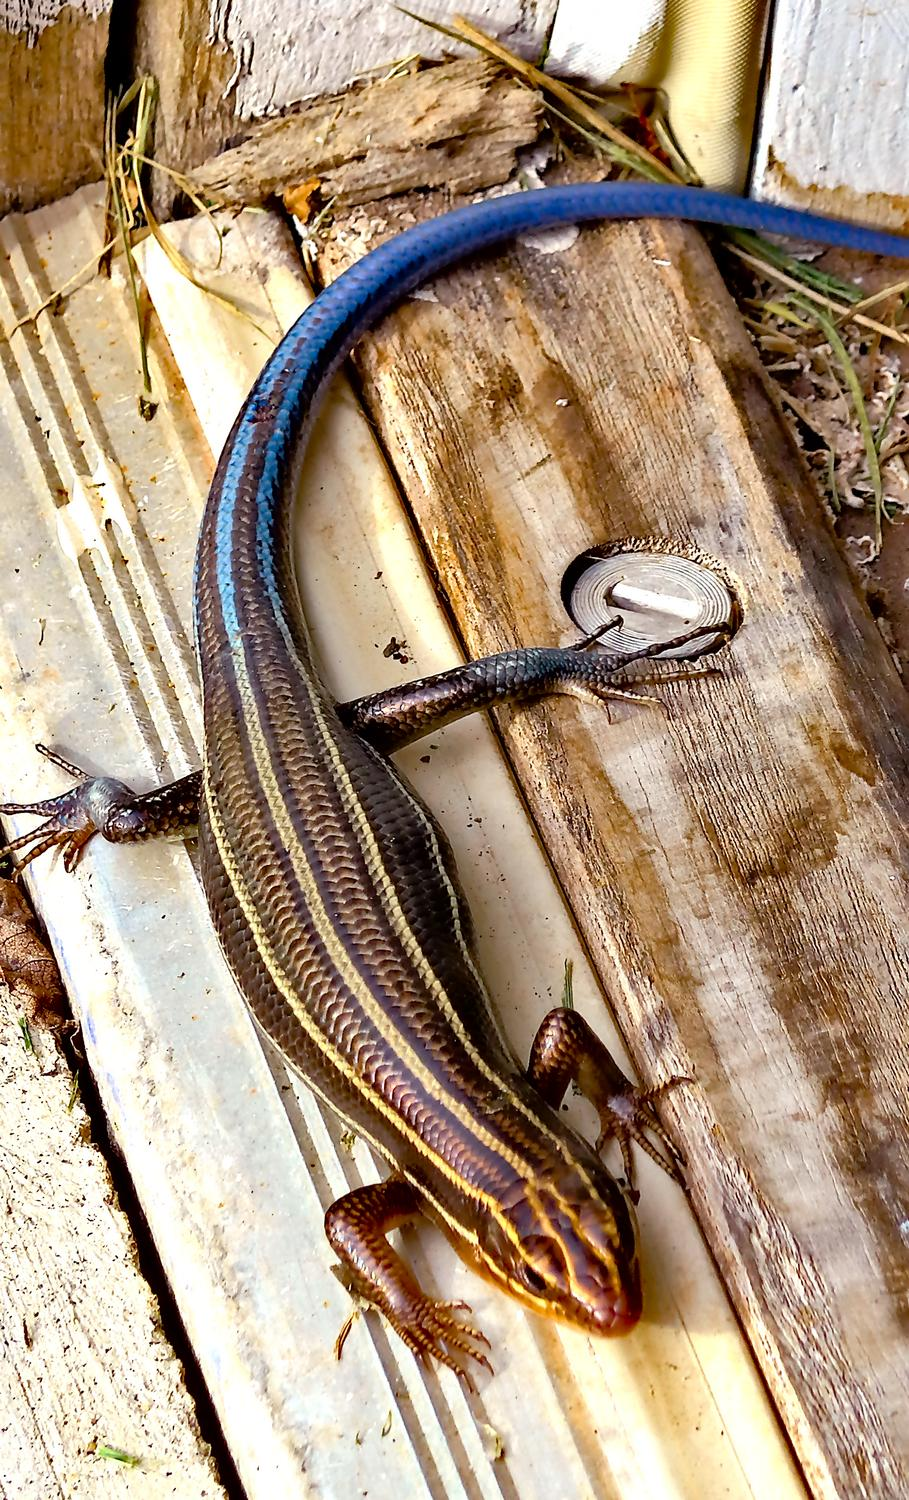 Panasonic DMC-LF1 - A skink by the garage. This one has a blue tail,<br> meaning it's still in its youth. - Leica C (typ 112) - Panasonic DMC-LF1 - five-lined skink - - - art  - photography - by Tony Karp